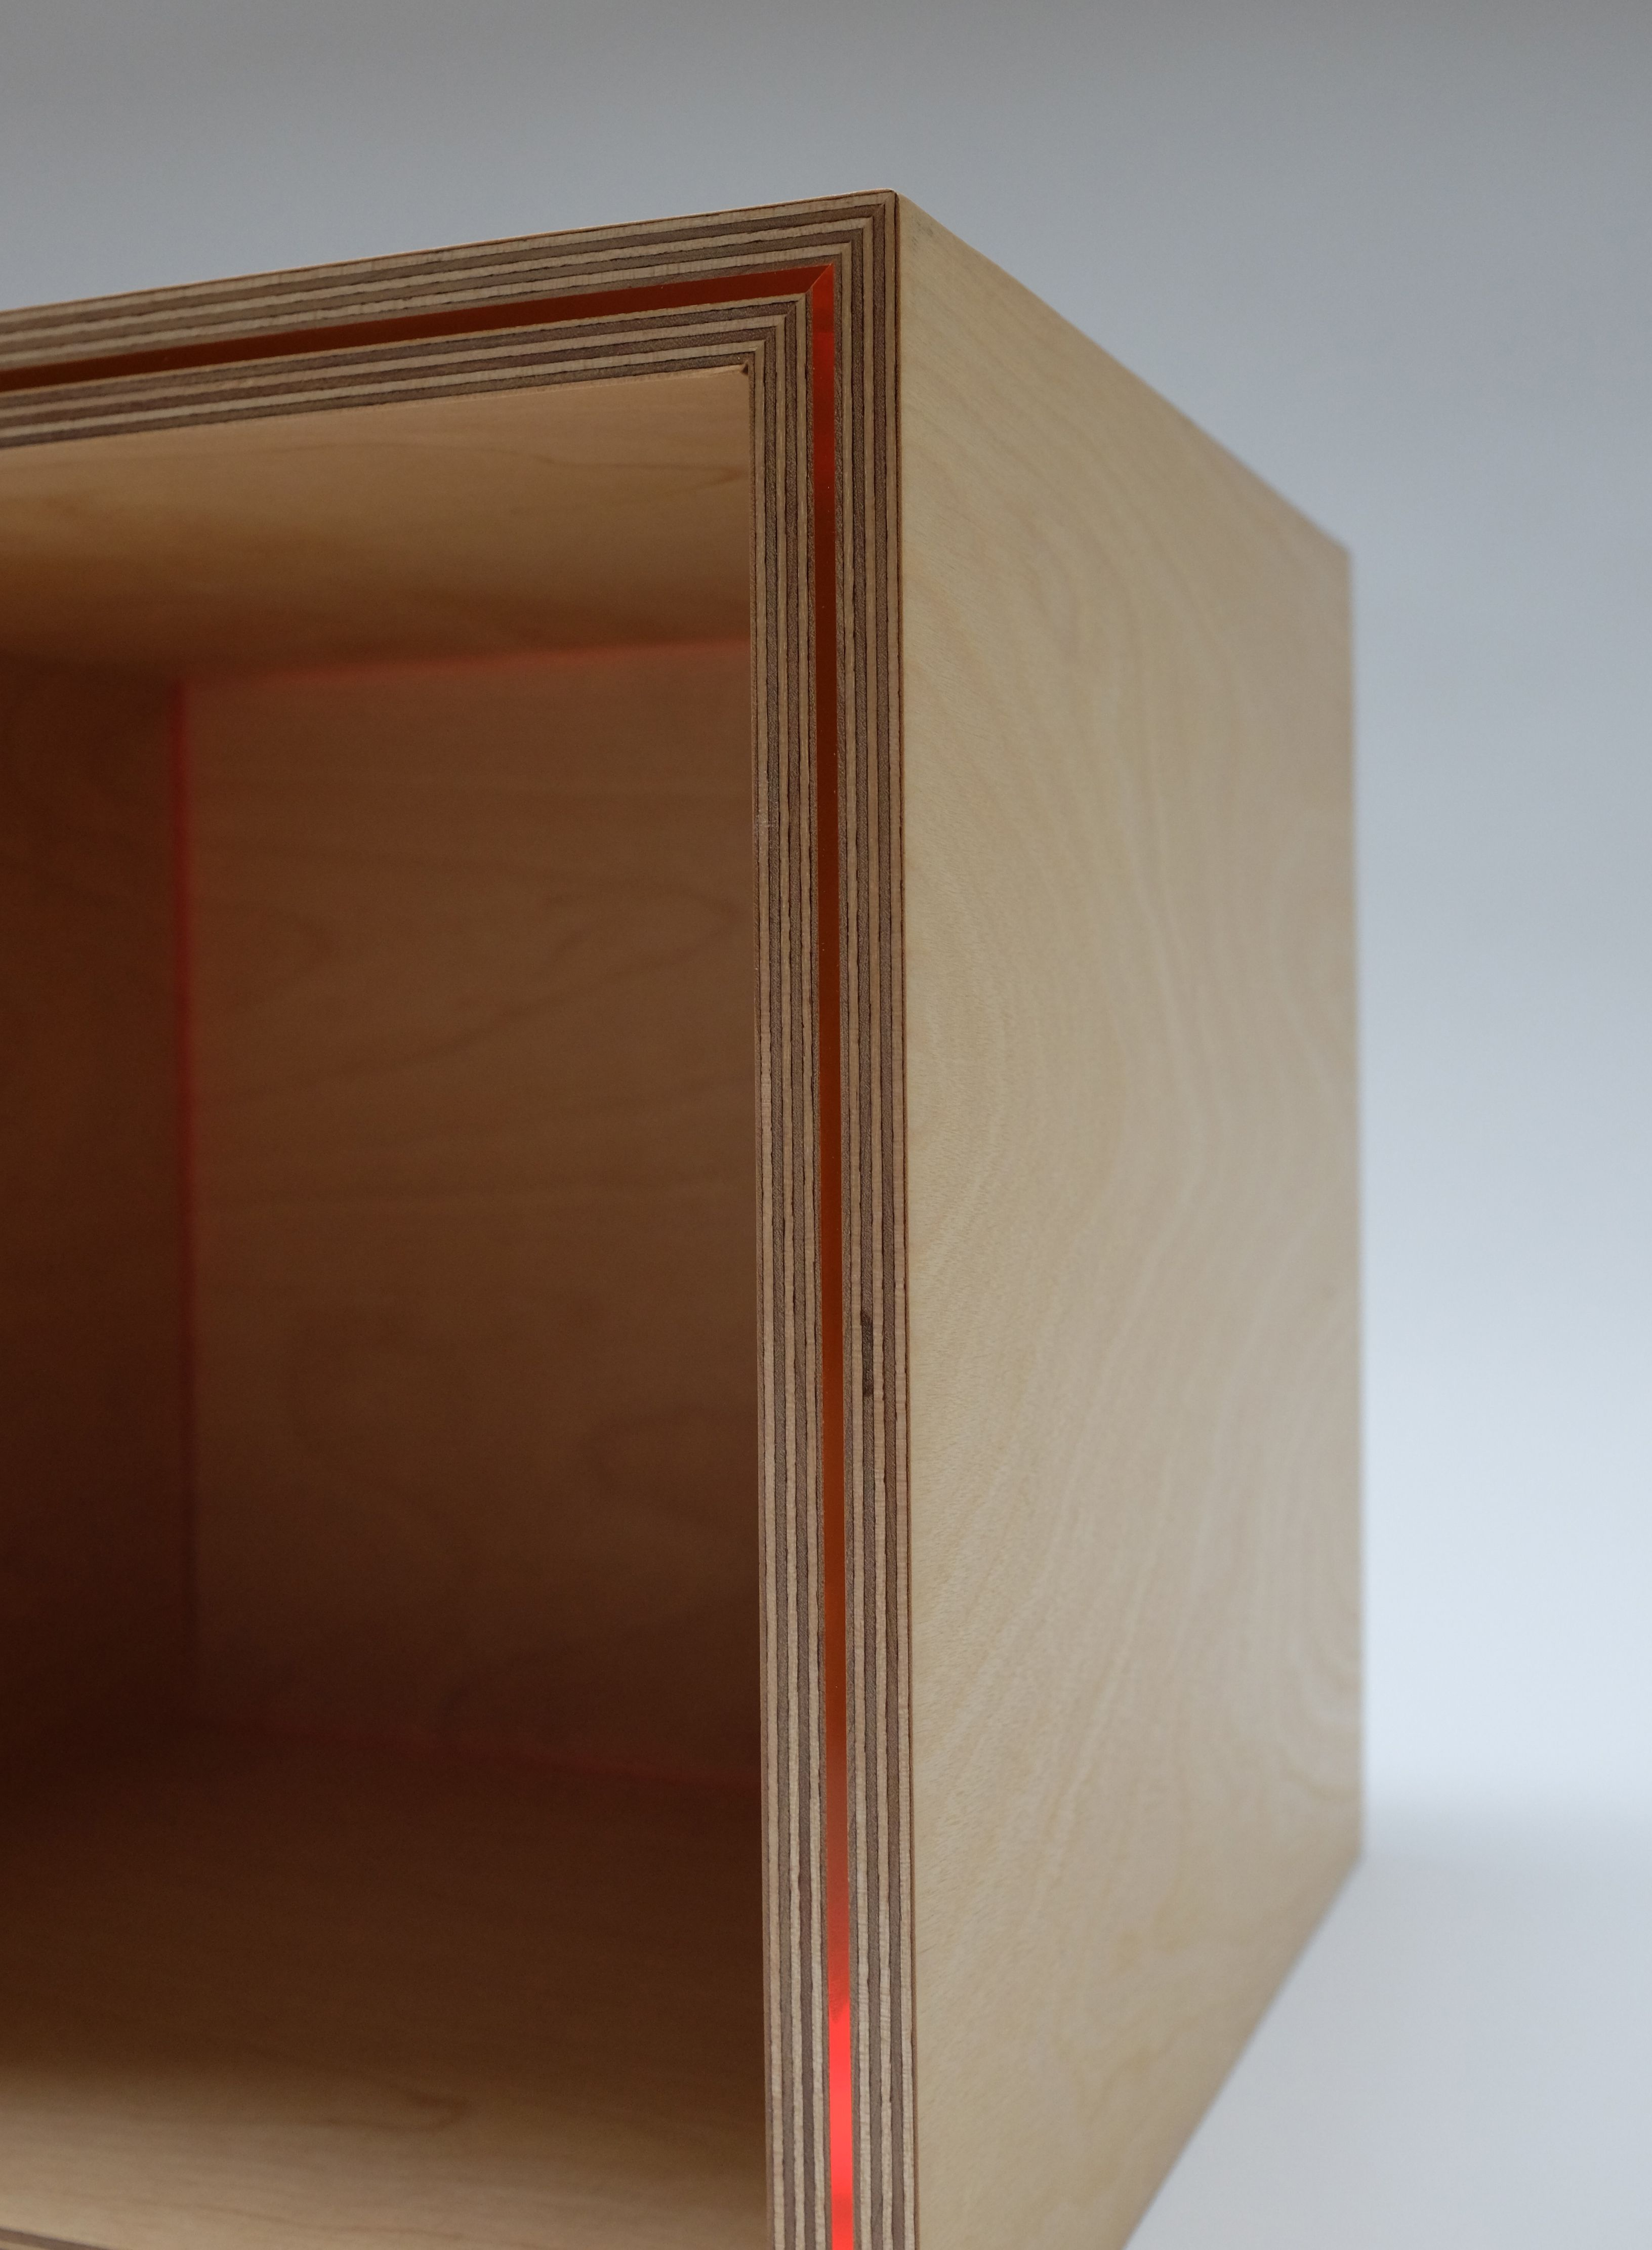 ODDBOX 2 Orange acrylic sandwiched between birch ply, backlit with LED light source, making the acrylic glow. Internal back panel is edge lit, and glows a lovely orange. Can be made any size, with different coloured acrylic, different wood for the box (could be oak, walnut, aluminium clad - the choice is yours!